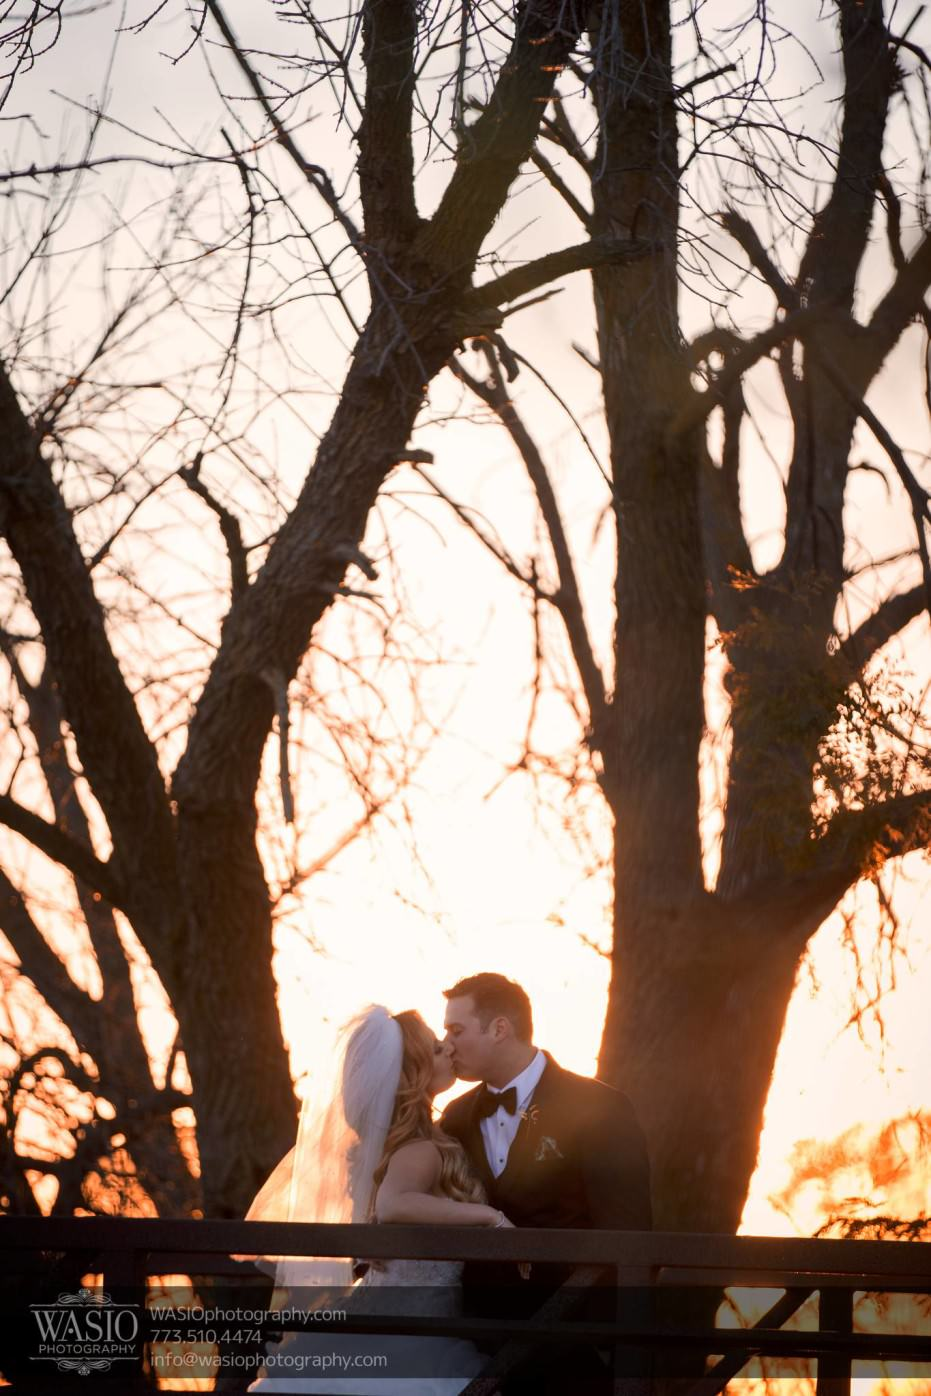 Country-club-wedding-fall-sunset-kiss-romance-113-931x1396 The Country Club Wedding - Nicole + Dean